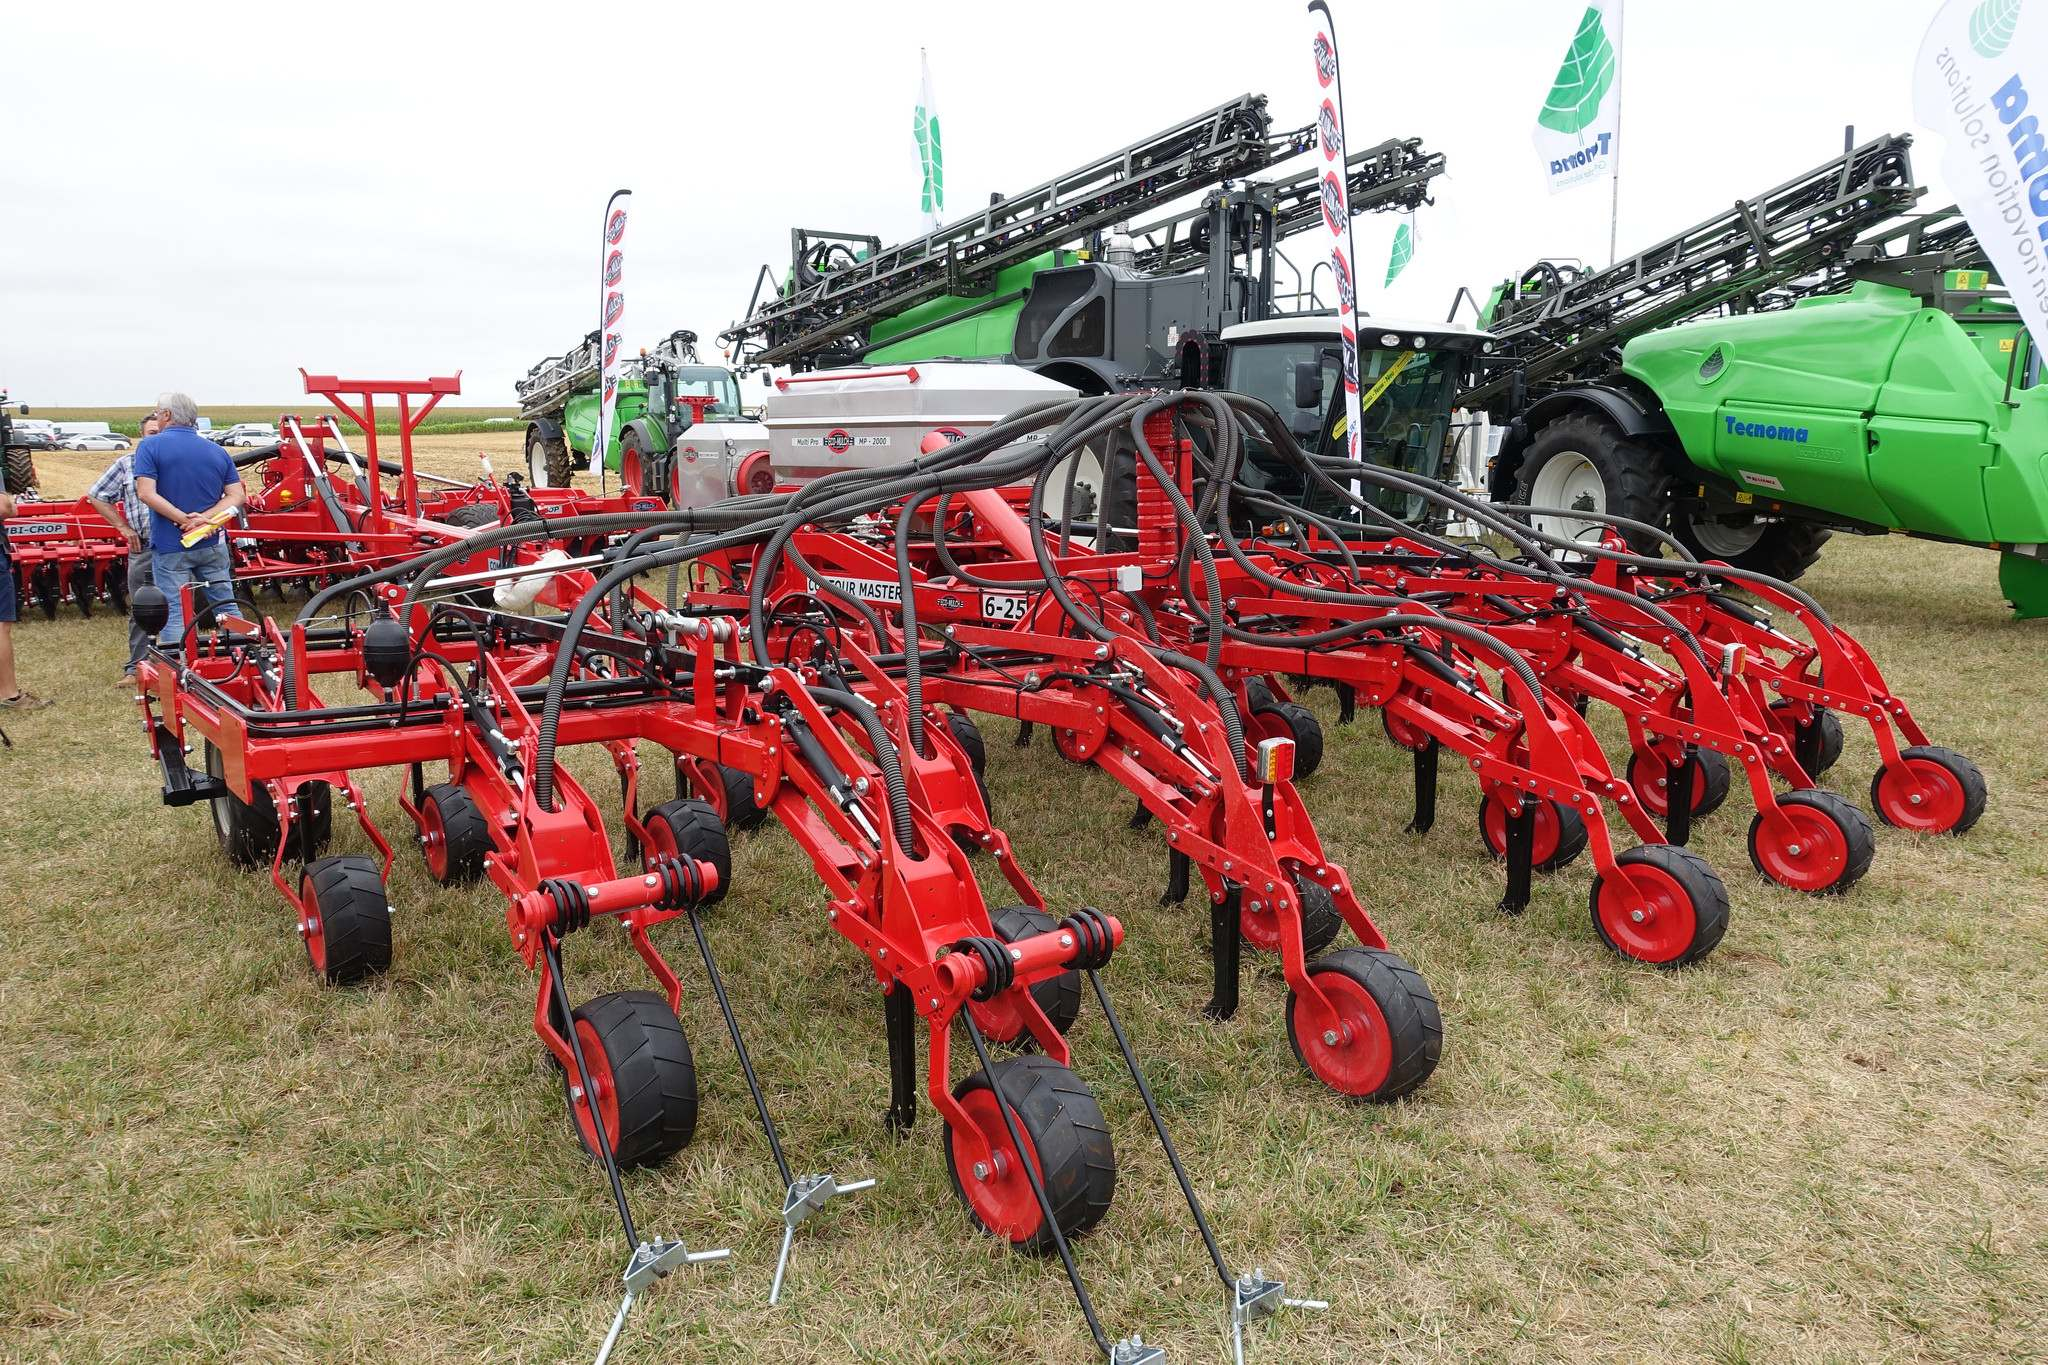 innov agri3 Innov agri 2016 Agriculture show in Outarville, France